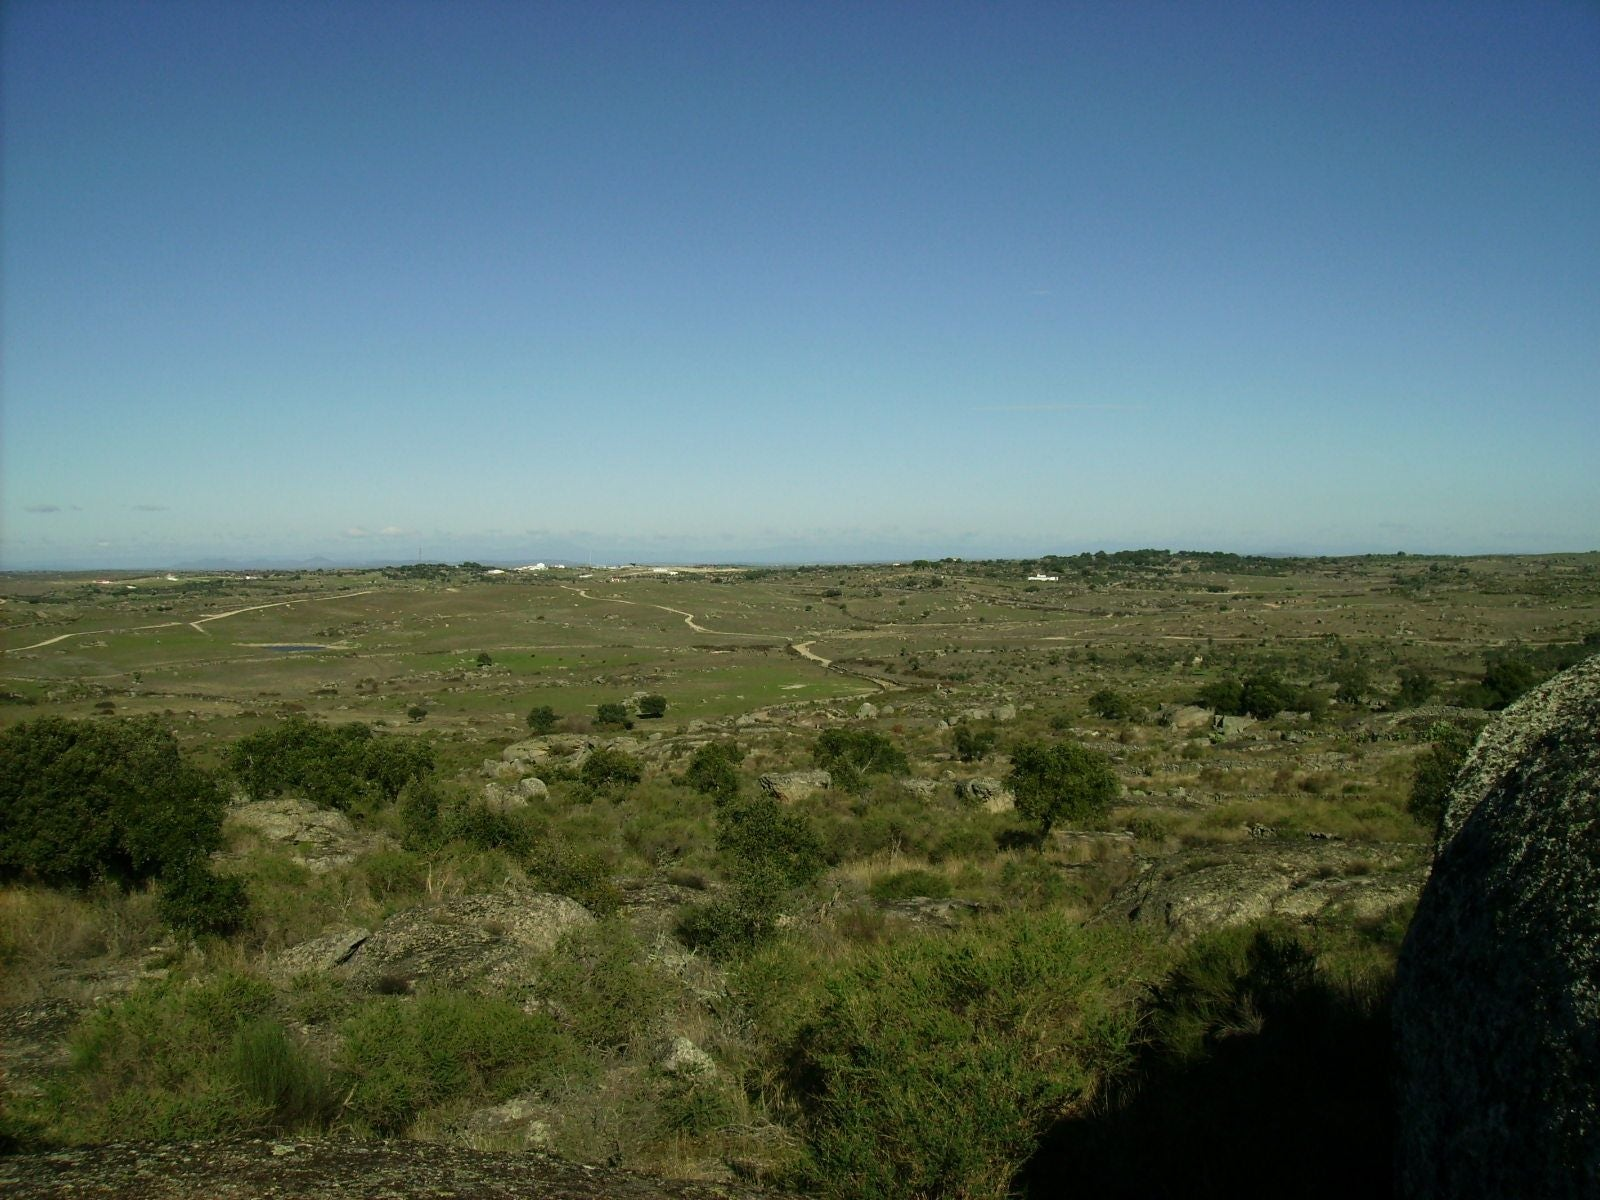 Plain in Navas del Madroño